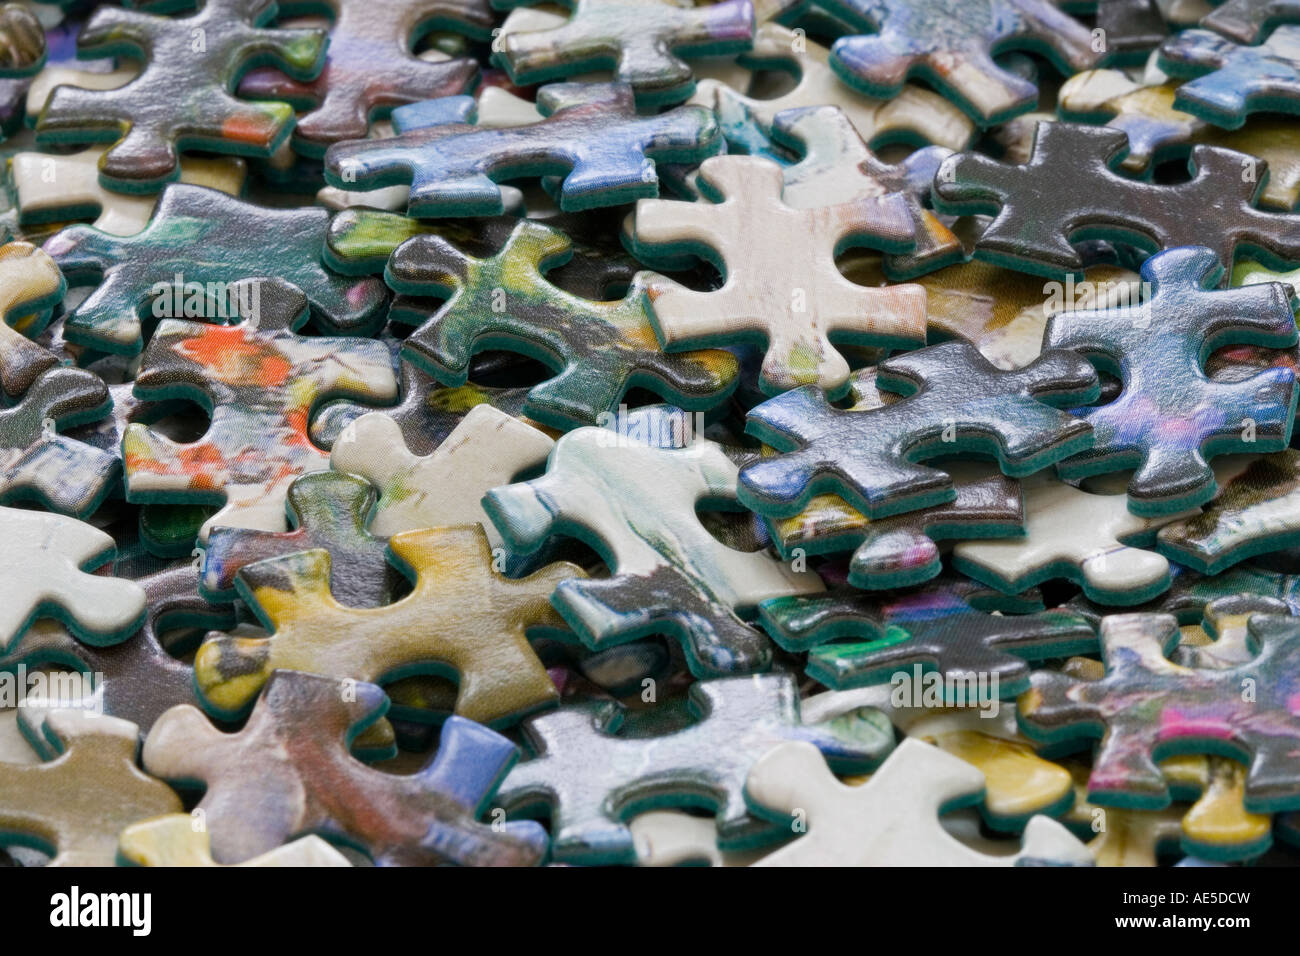 Closeup of the pieces of a jigsaw puzzle in a pile conveys idea of confusion or trying to figure out a problem - Stock Image